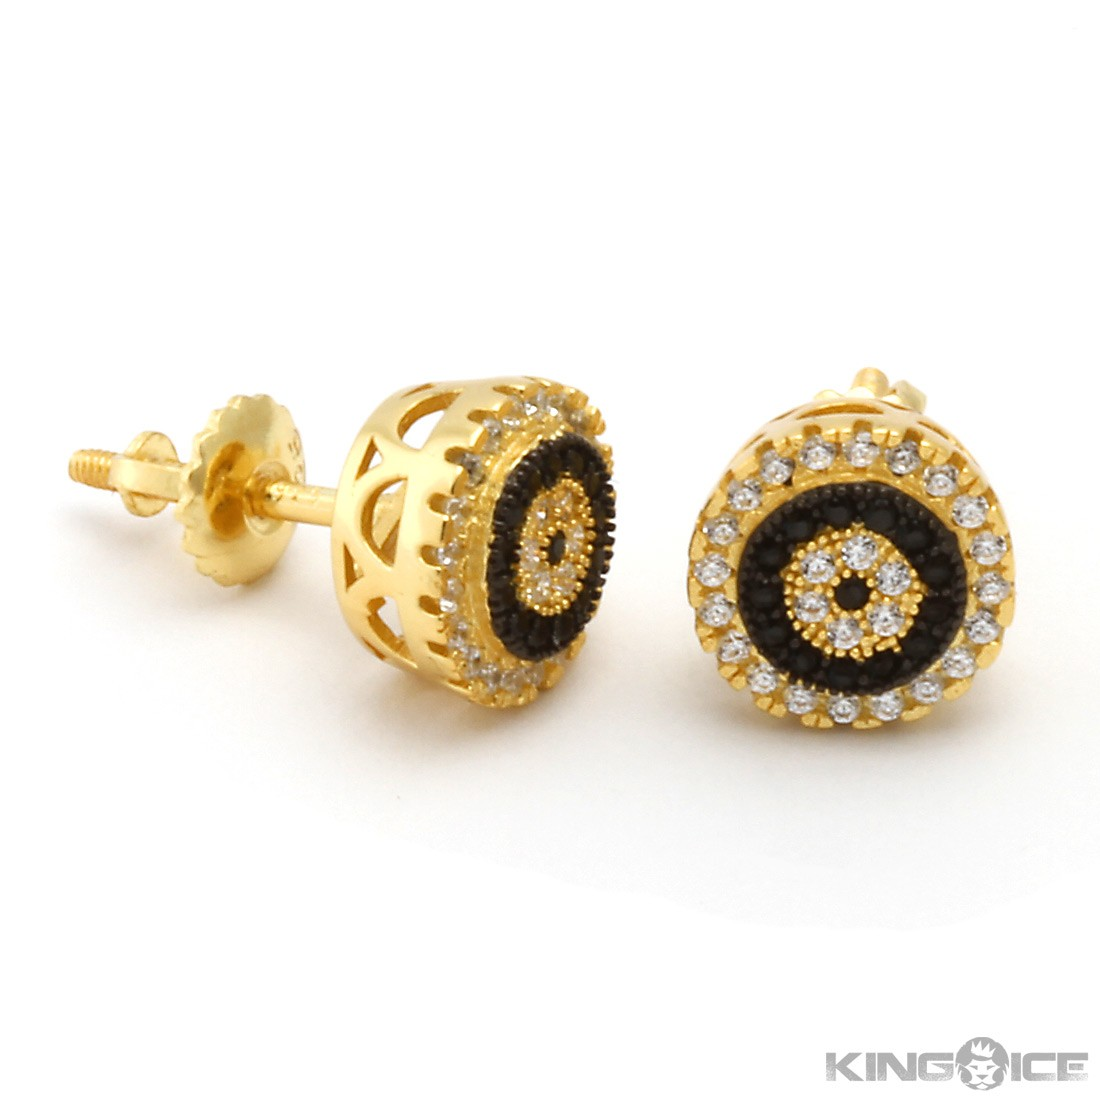 King Ice 14k Gold Round Cz Earrings